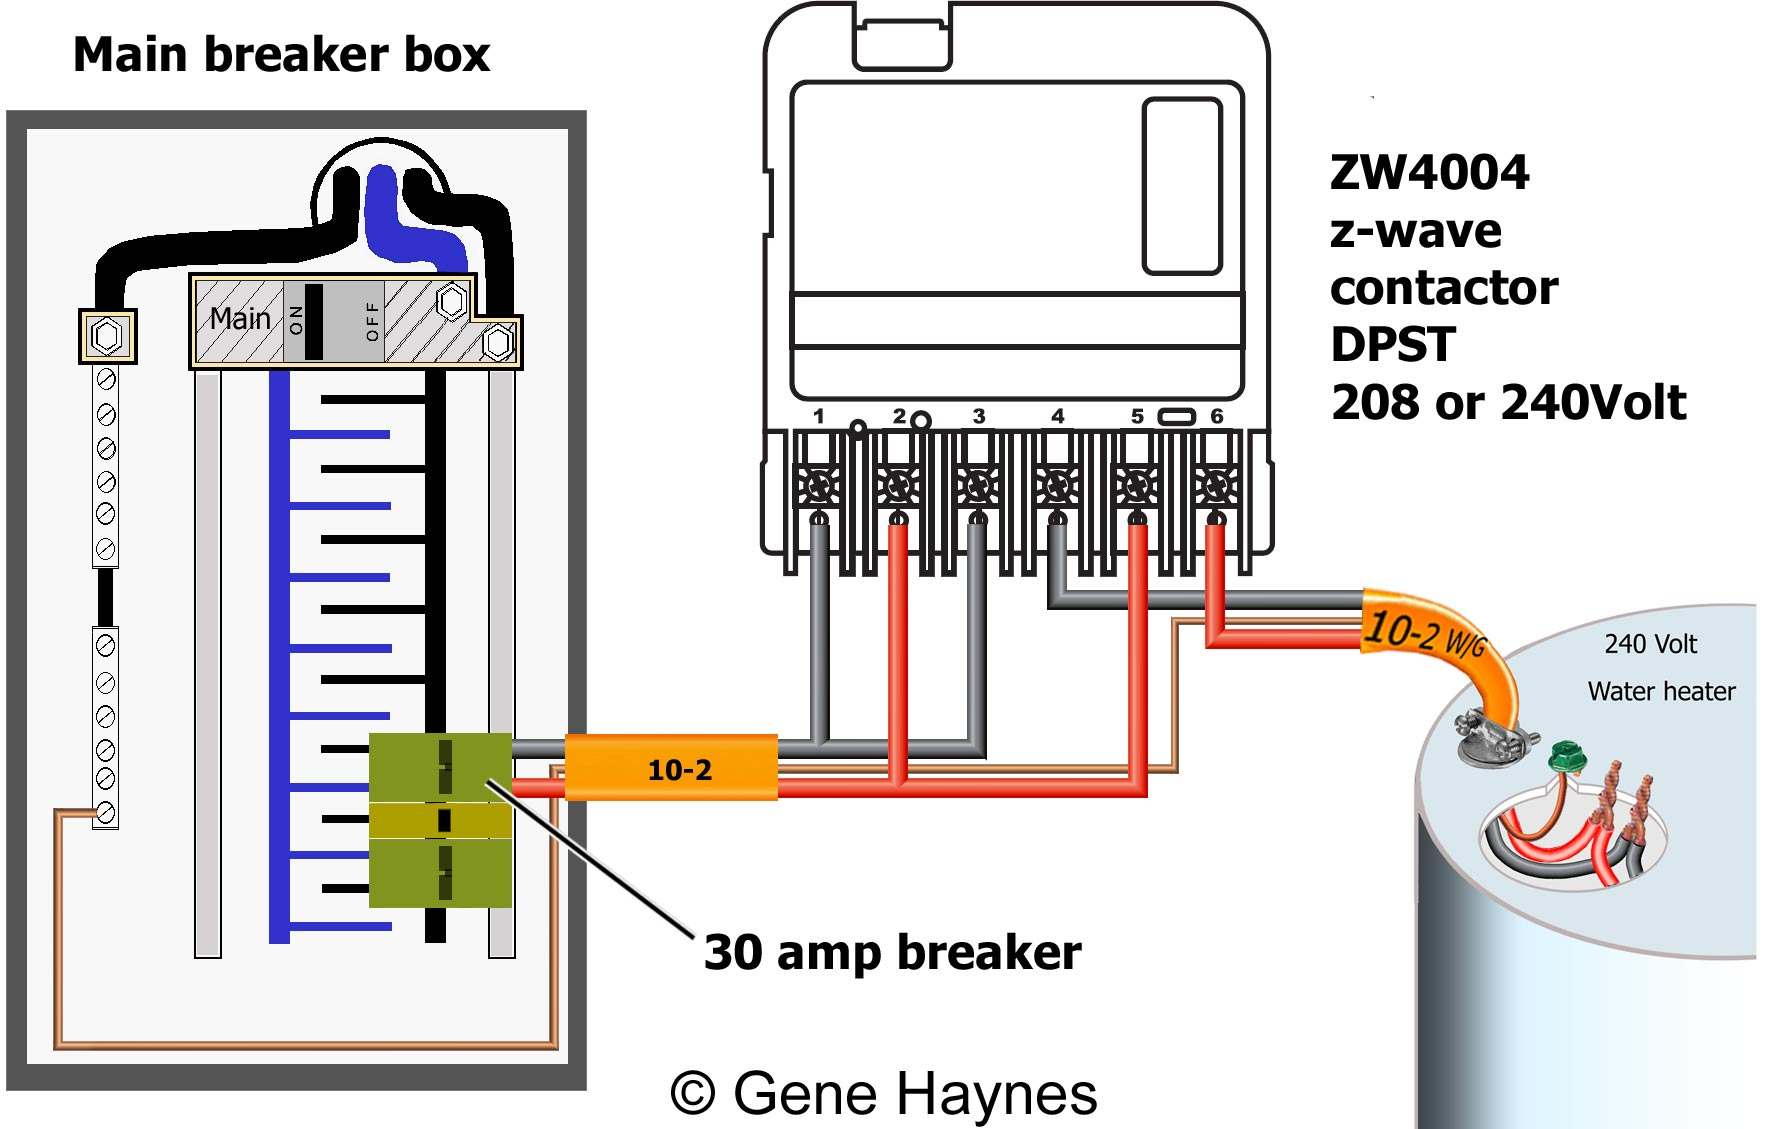 How To Wire Ca3750 Z-Wave Contactor + Zwave Basics - 240 Volt Contactor Wiring Diagram